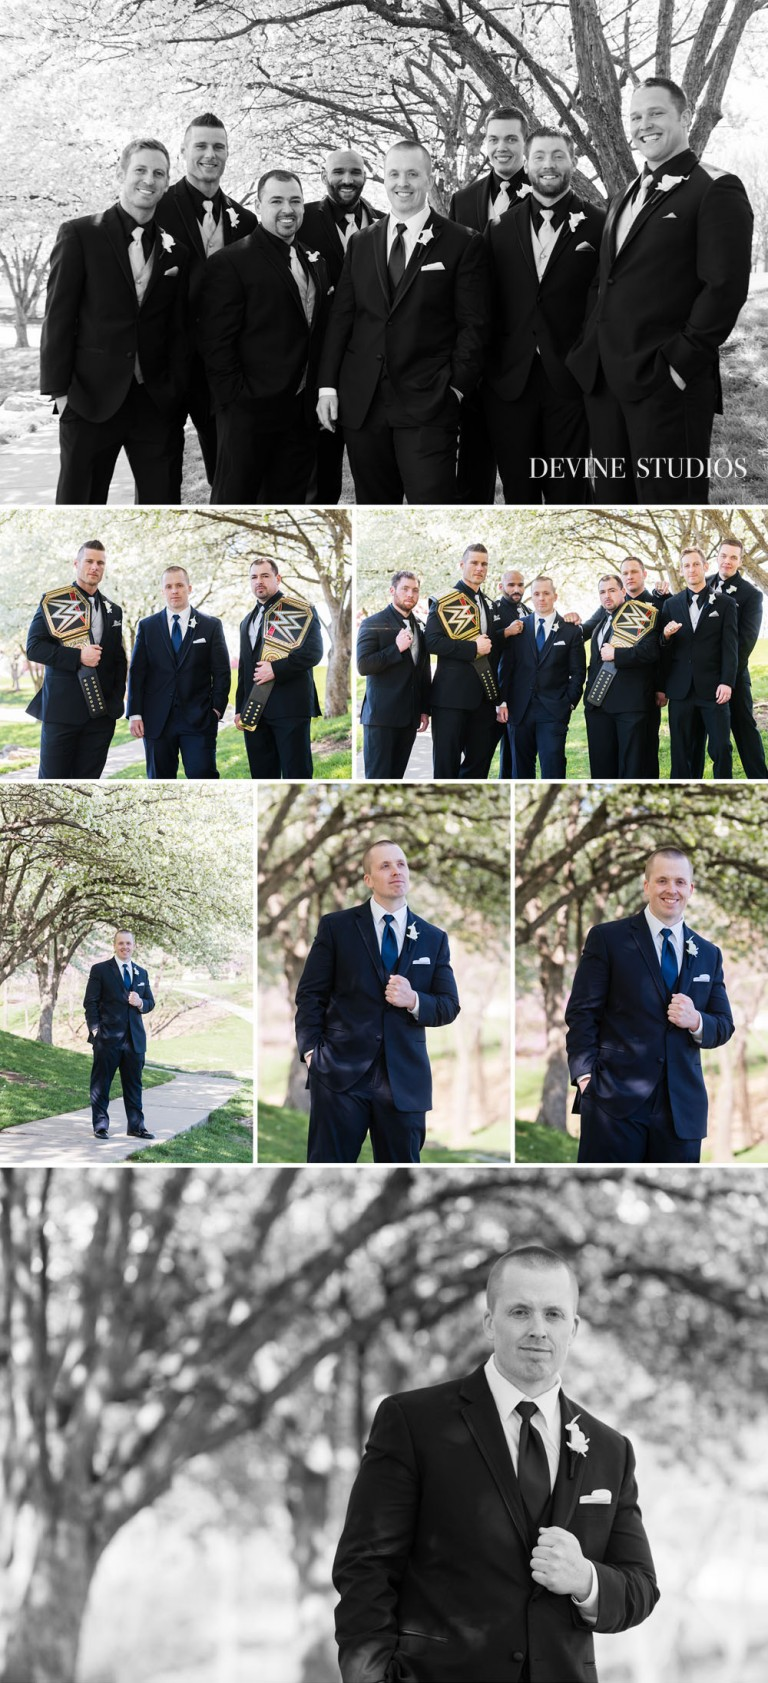 http://devinestudios.com/boudoir/wp-content/uploads/2016/05/10-839-post/Kansas-City-Wedding-Photography-Town-Pavilion-photojournalist-photographers7-768x1683.jpg